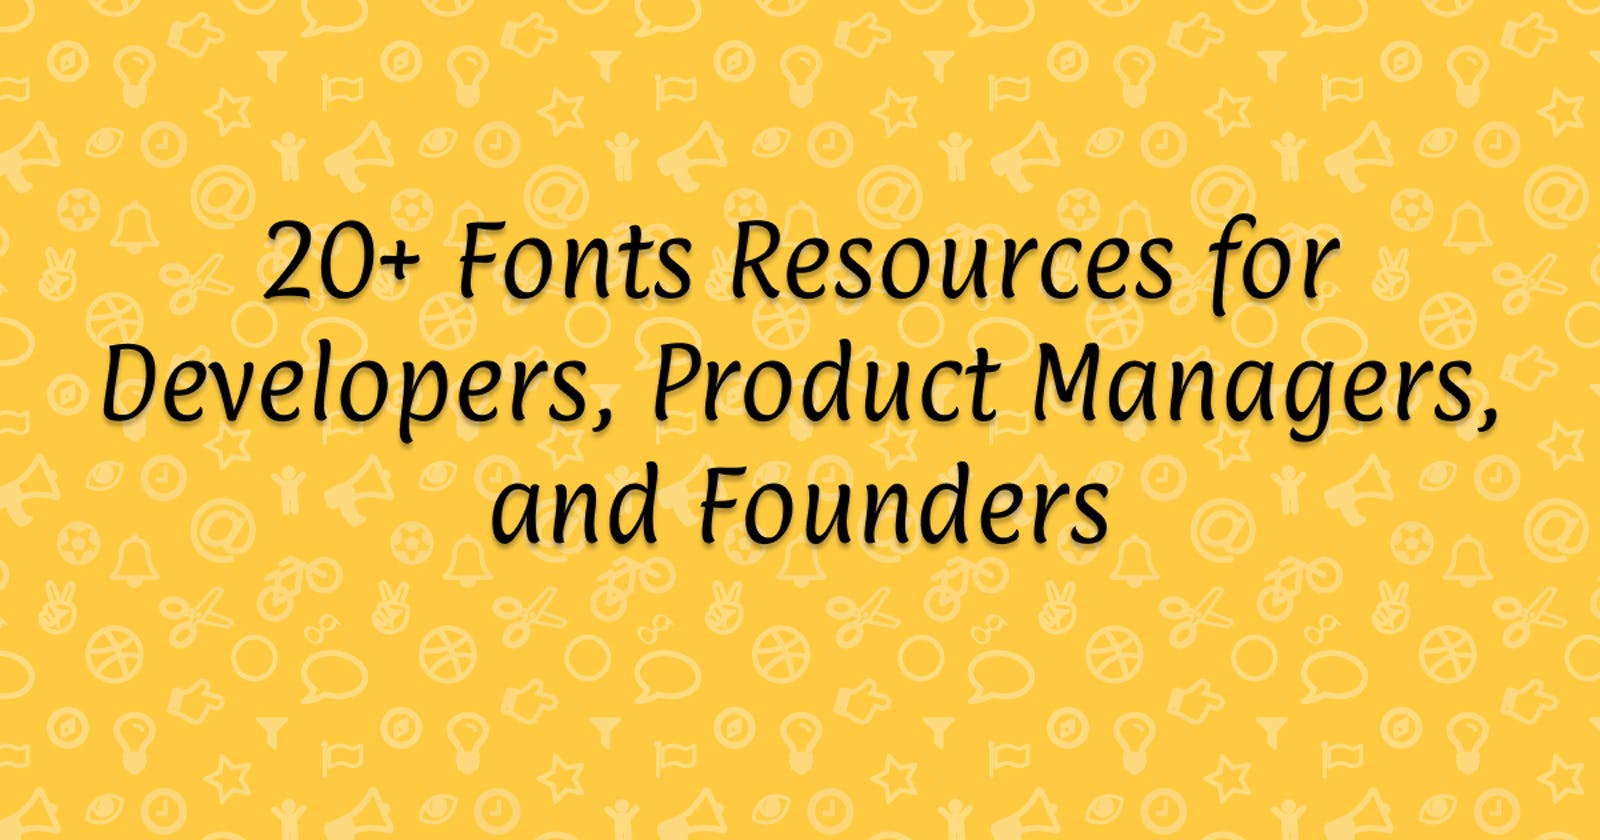 20+ Fonts Resources for Developers, Product Managers, and Founders